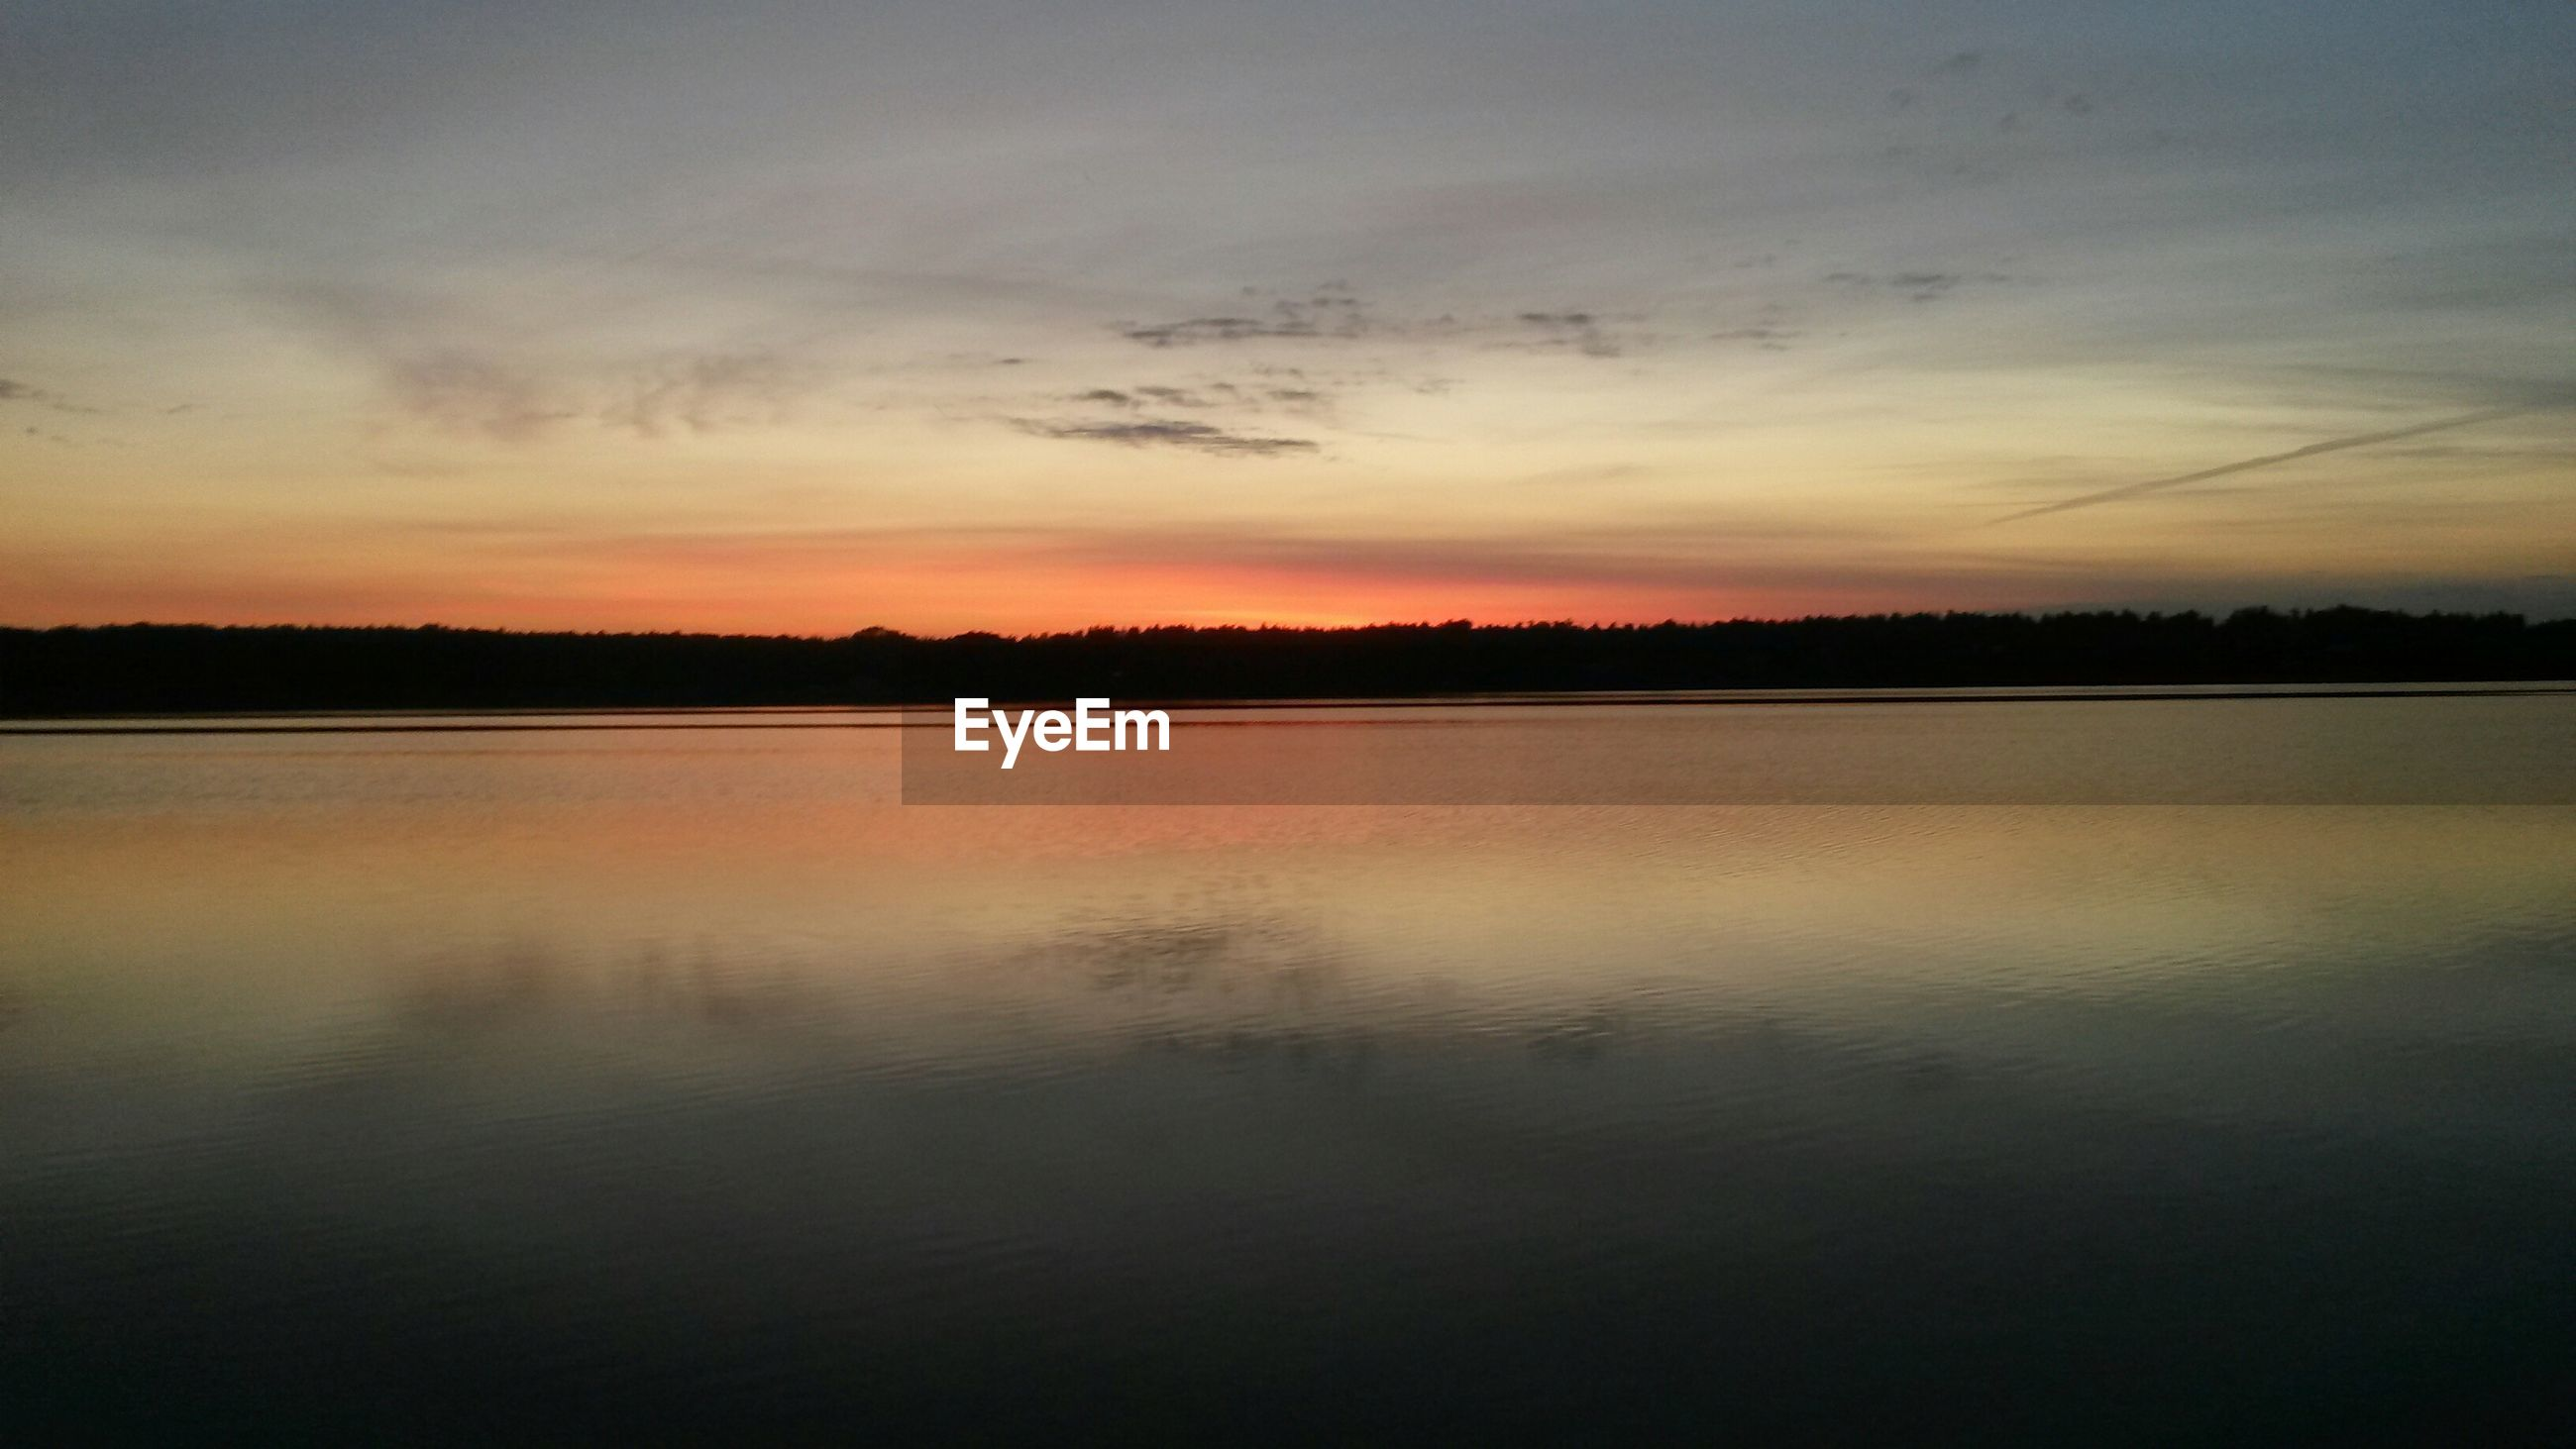 sunset, tranquil scene, reflection, scenics, tranquility, water, beauty in nature, lake, sky, silhouette, idyllic, nature, waterfront, orange color, cloud - sky, calm, standing water, dusk, non-urban scene, outdoors